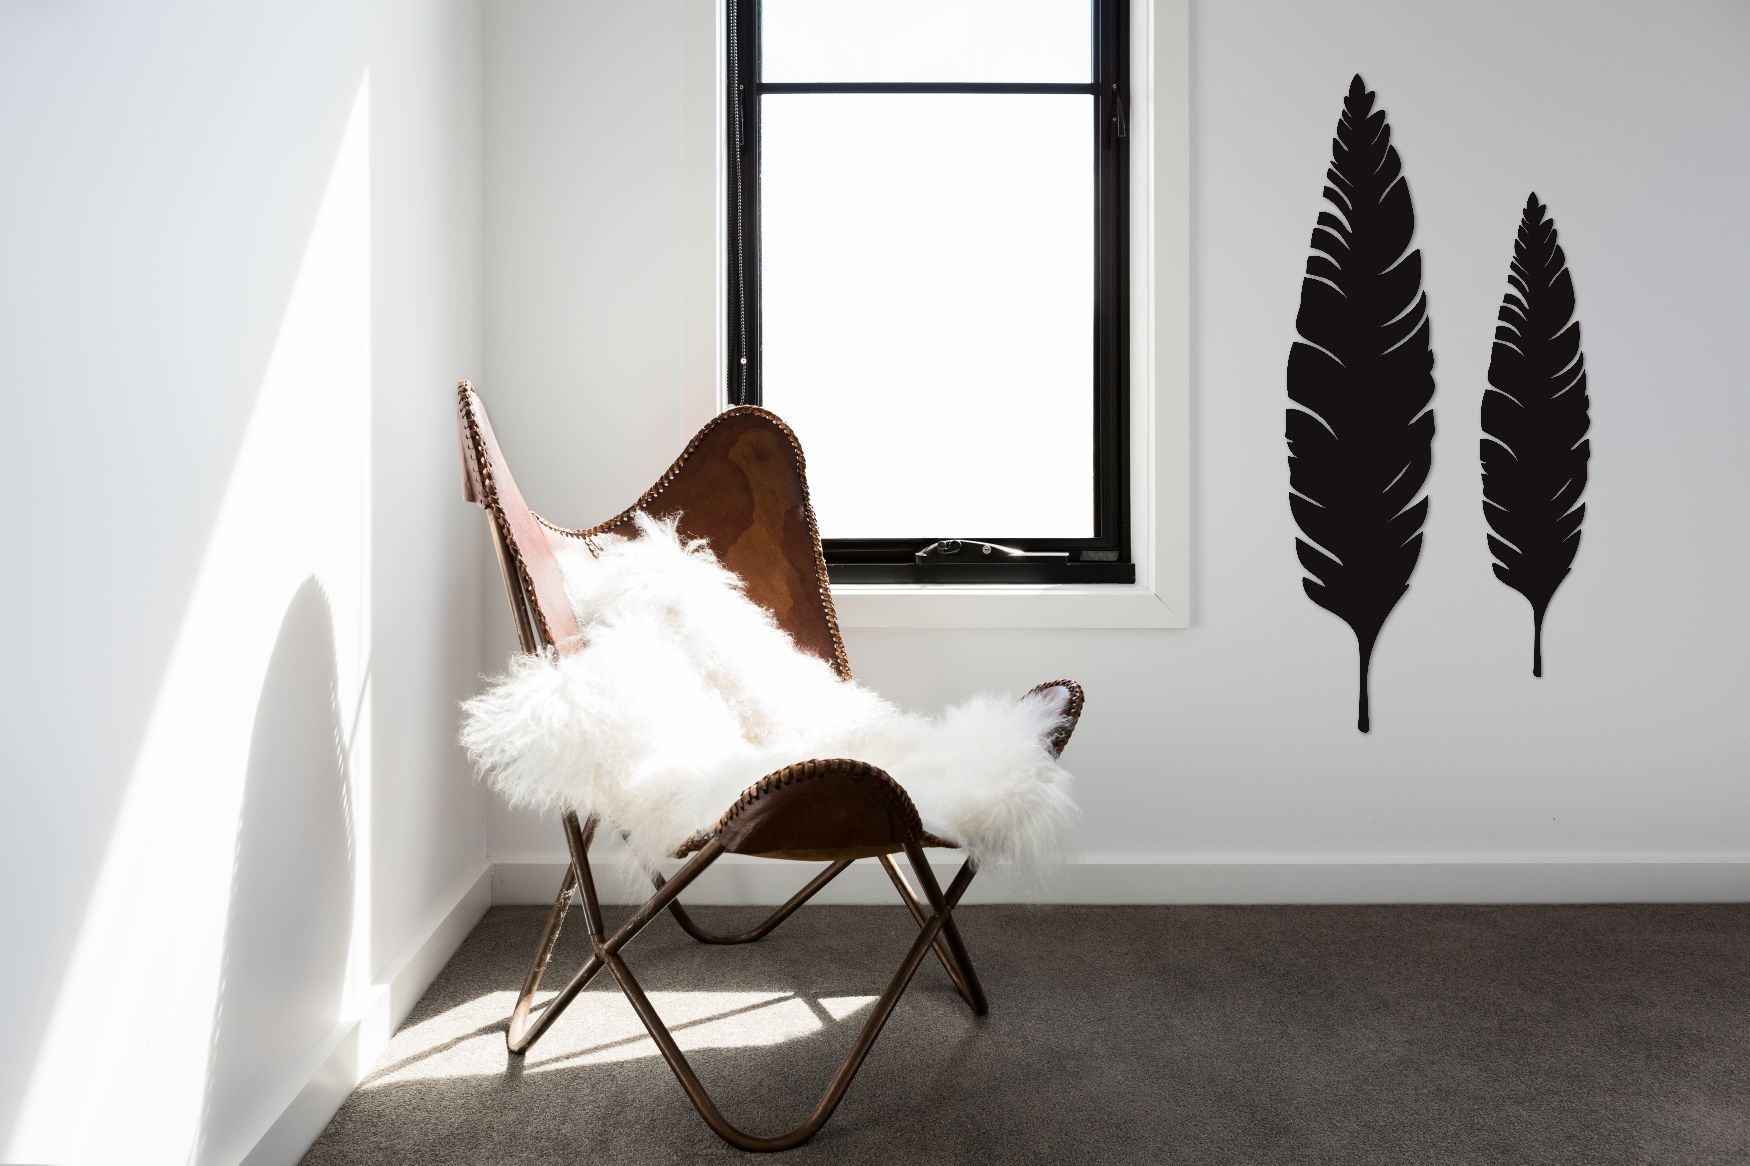 4lisa-sarah-designs-in-steel_classic-and-timeless-monochrome-matte-black-steel-feathers.jpg